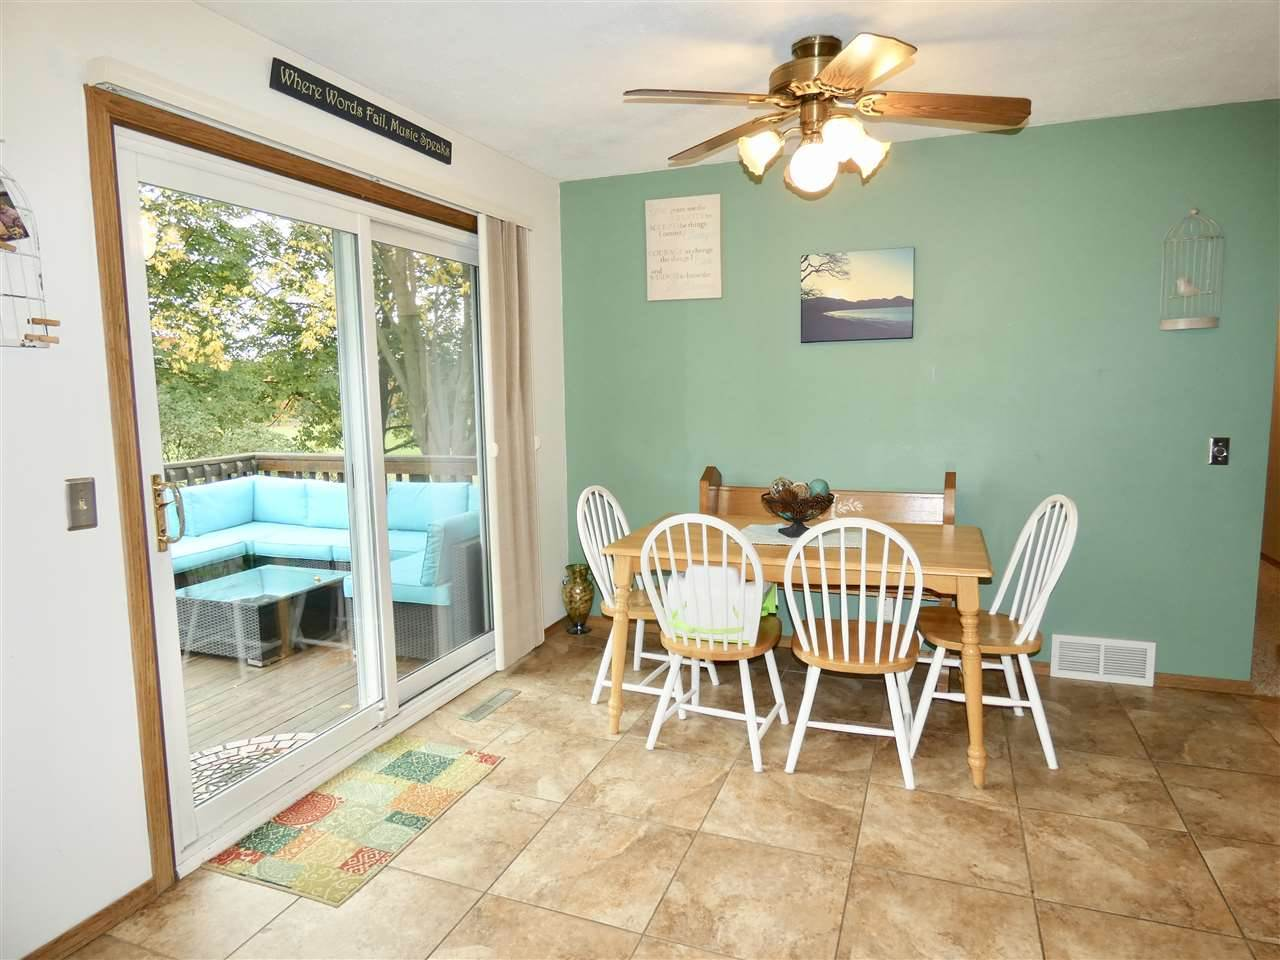 1413 Droster Rd, Madison, WI 53716